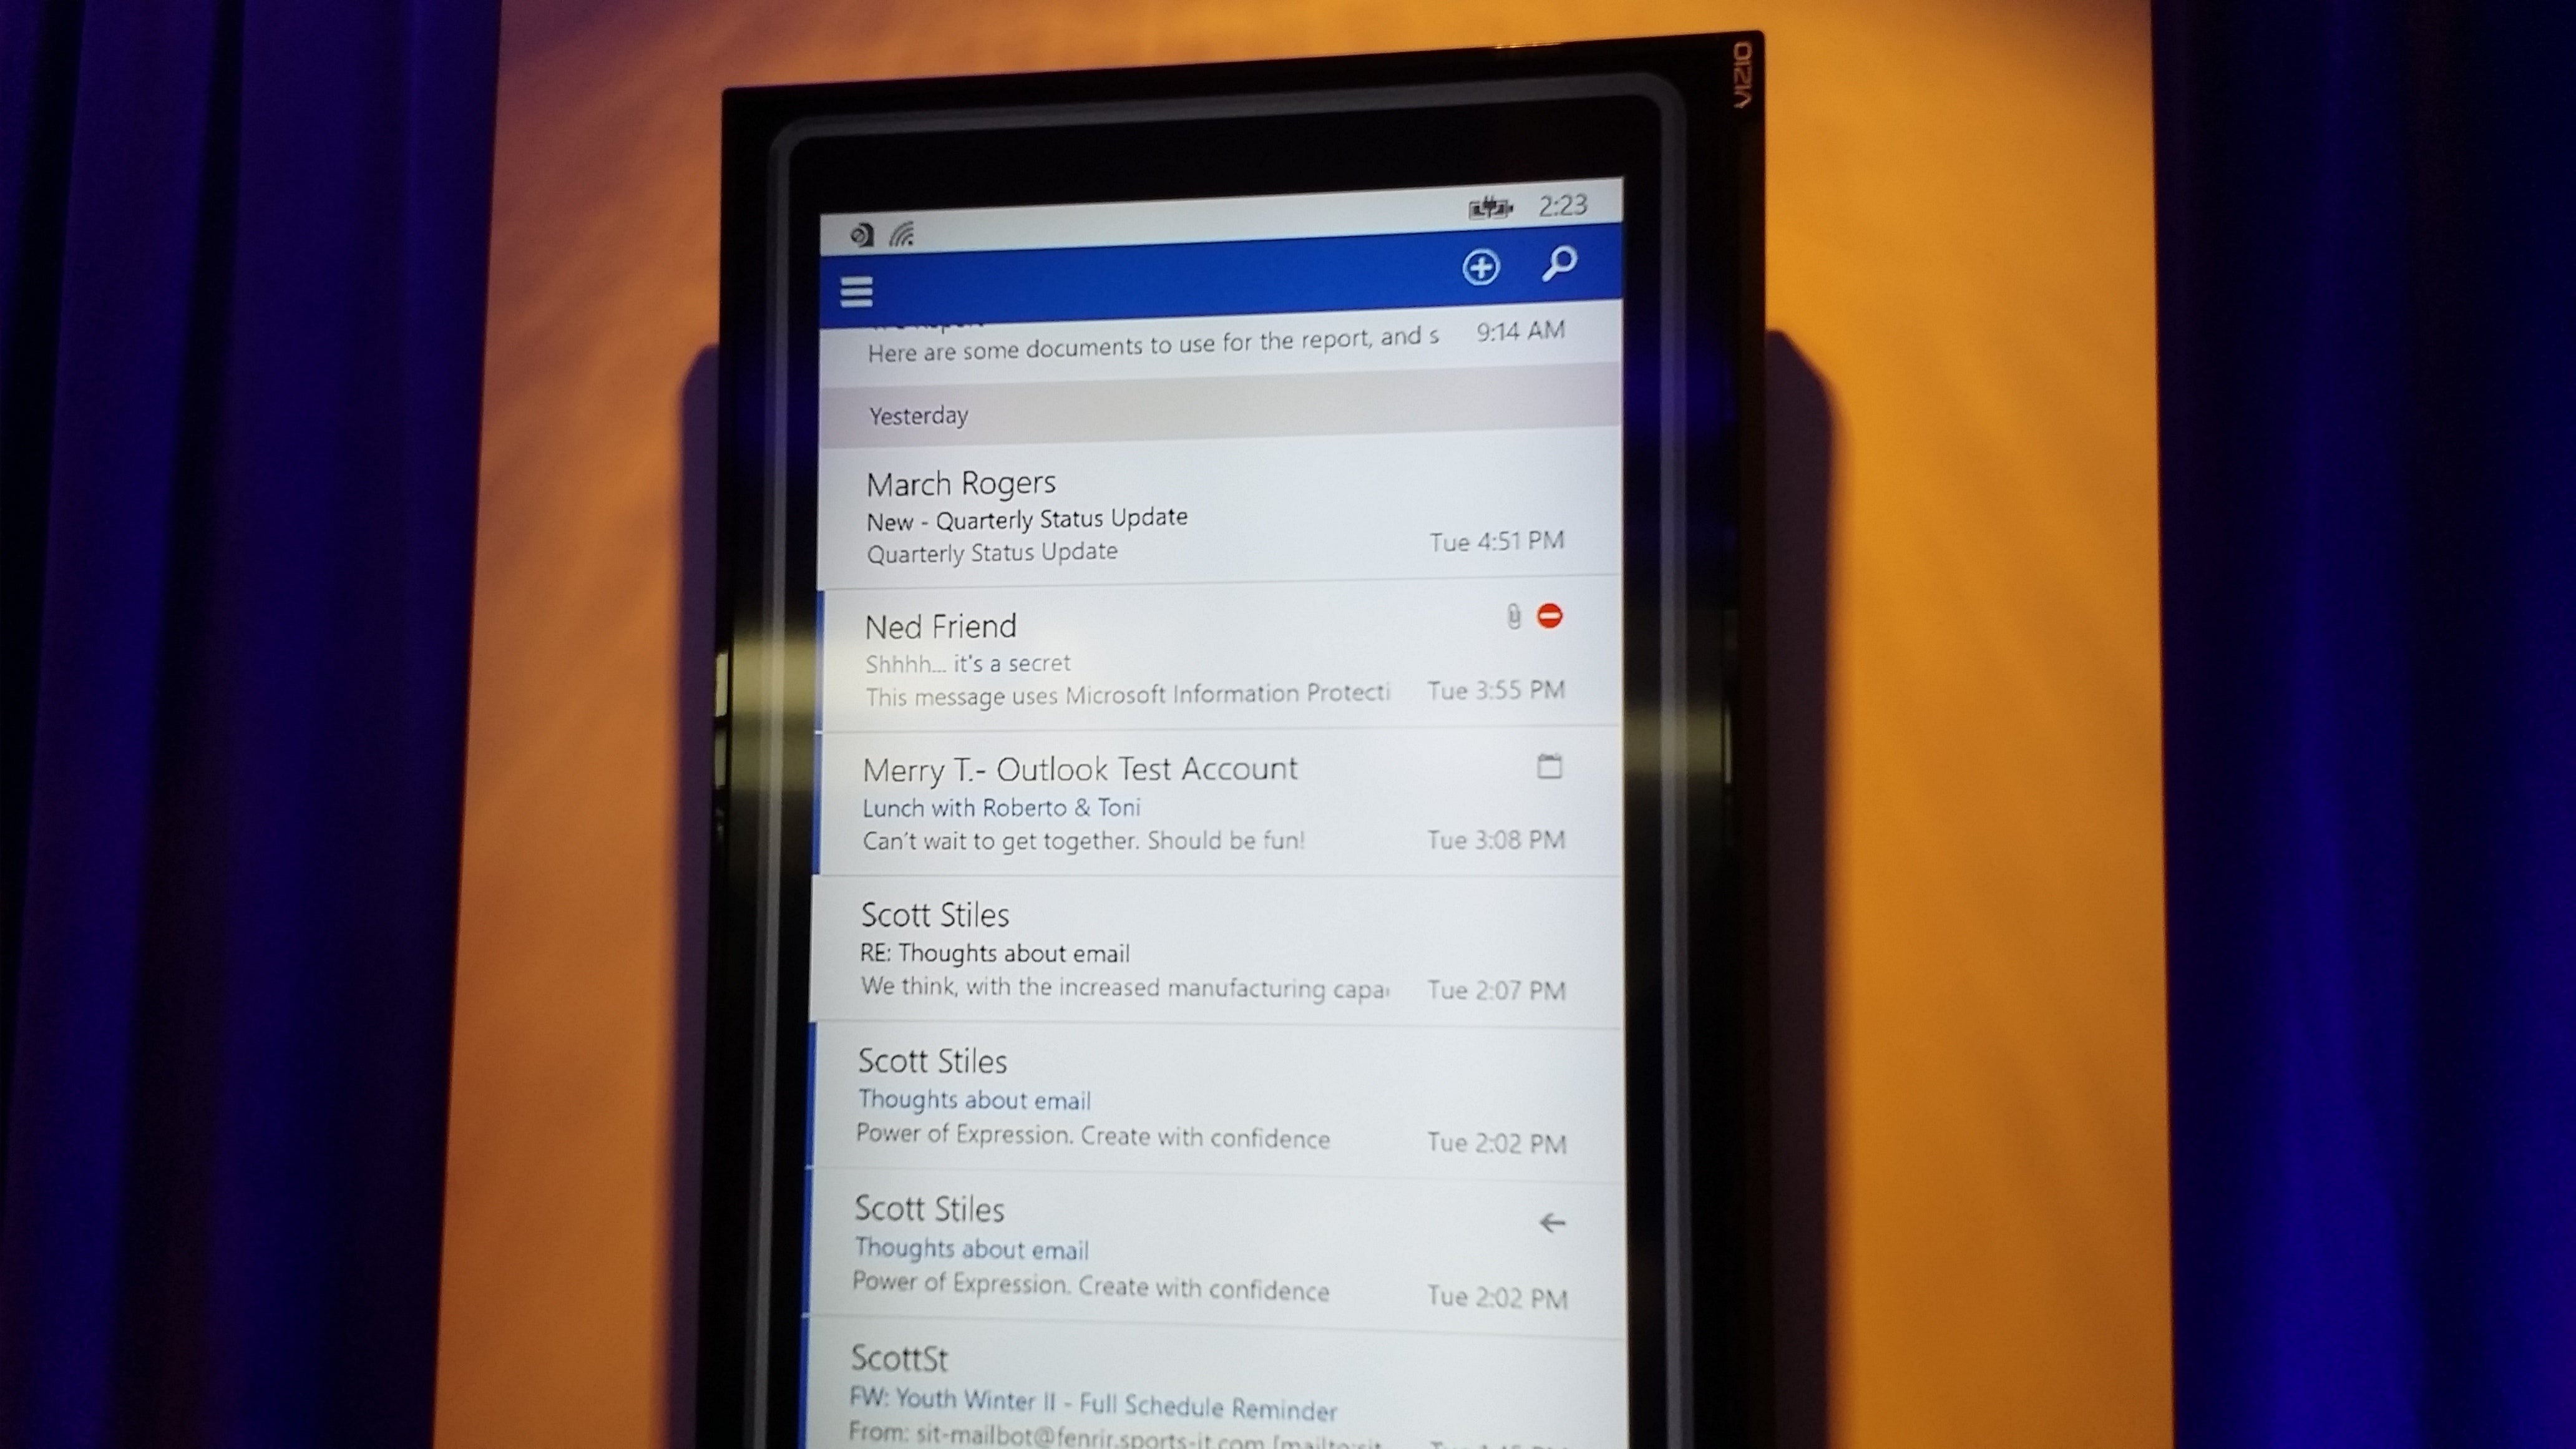 Windows 10 for phones: A change in name, but not in core features